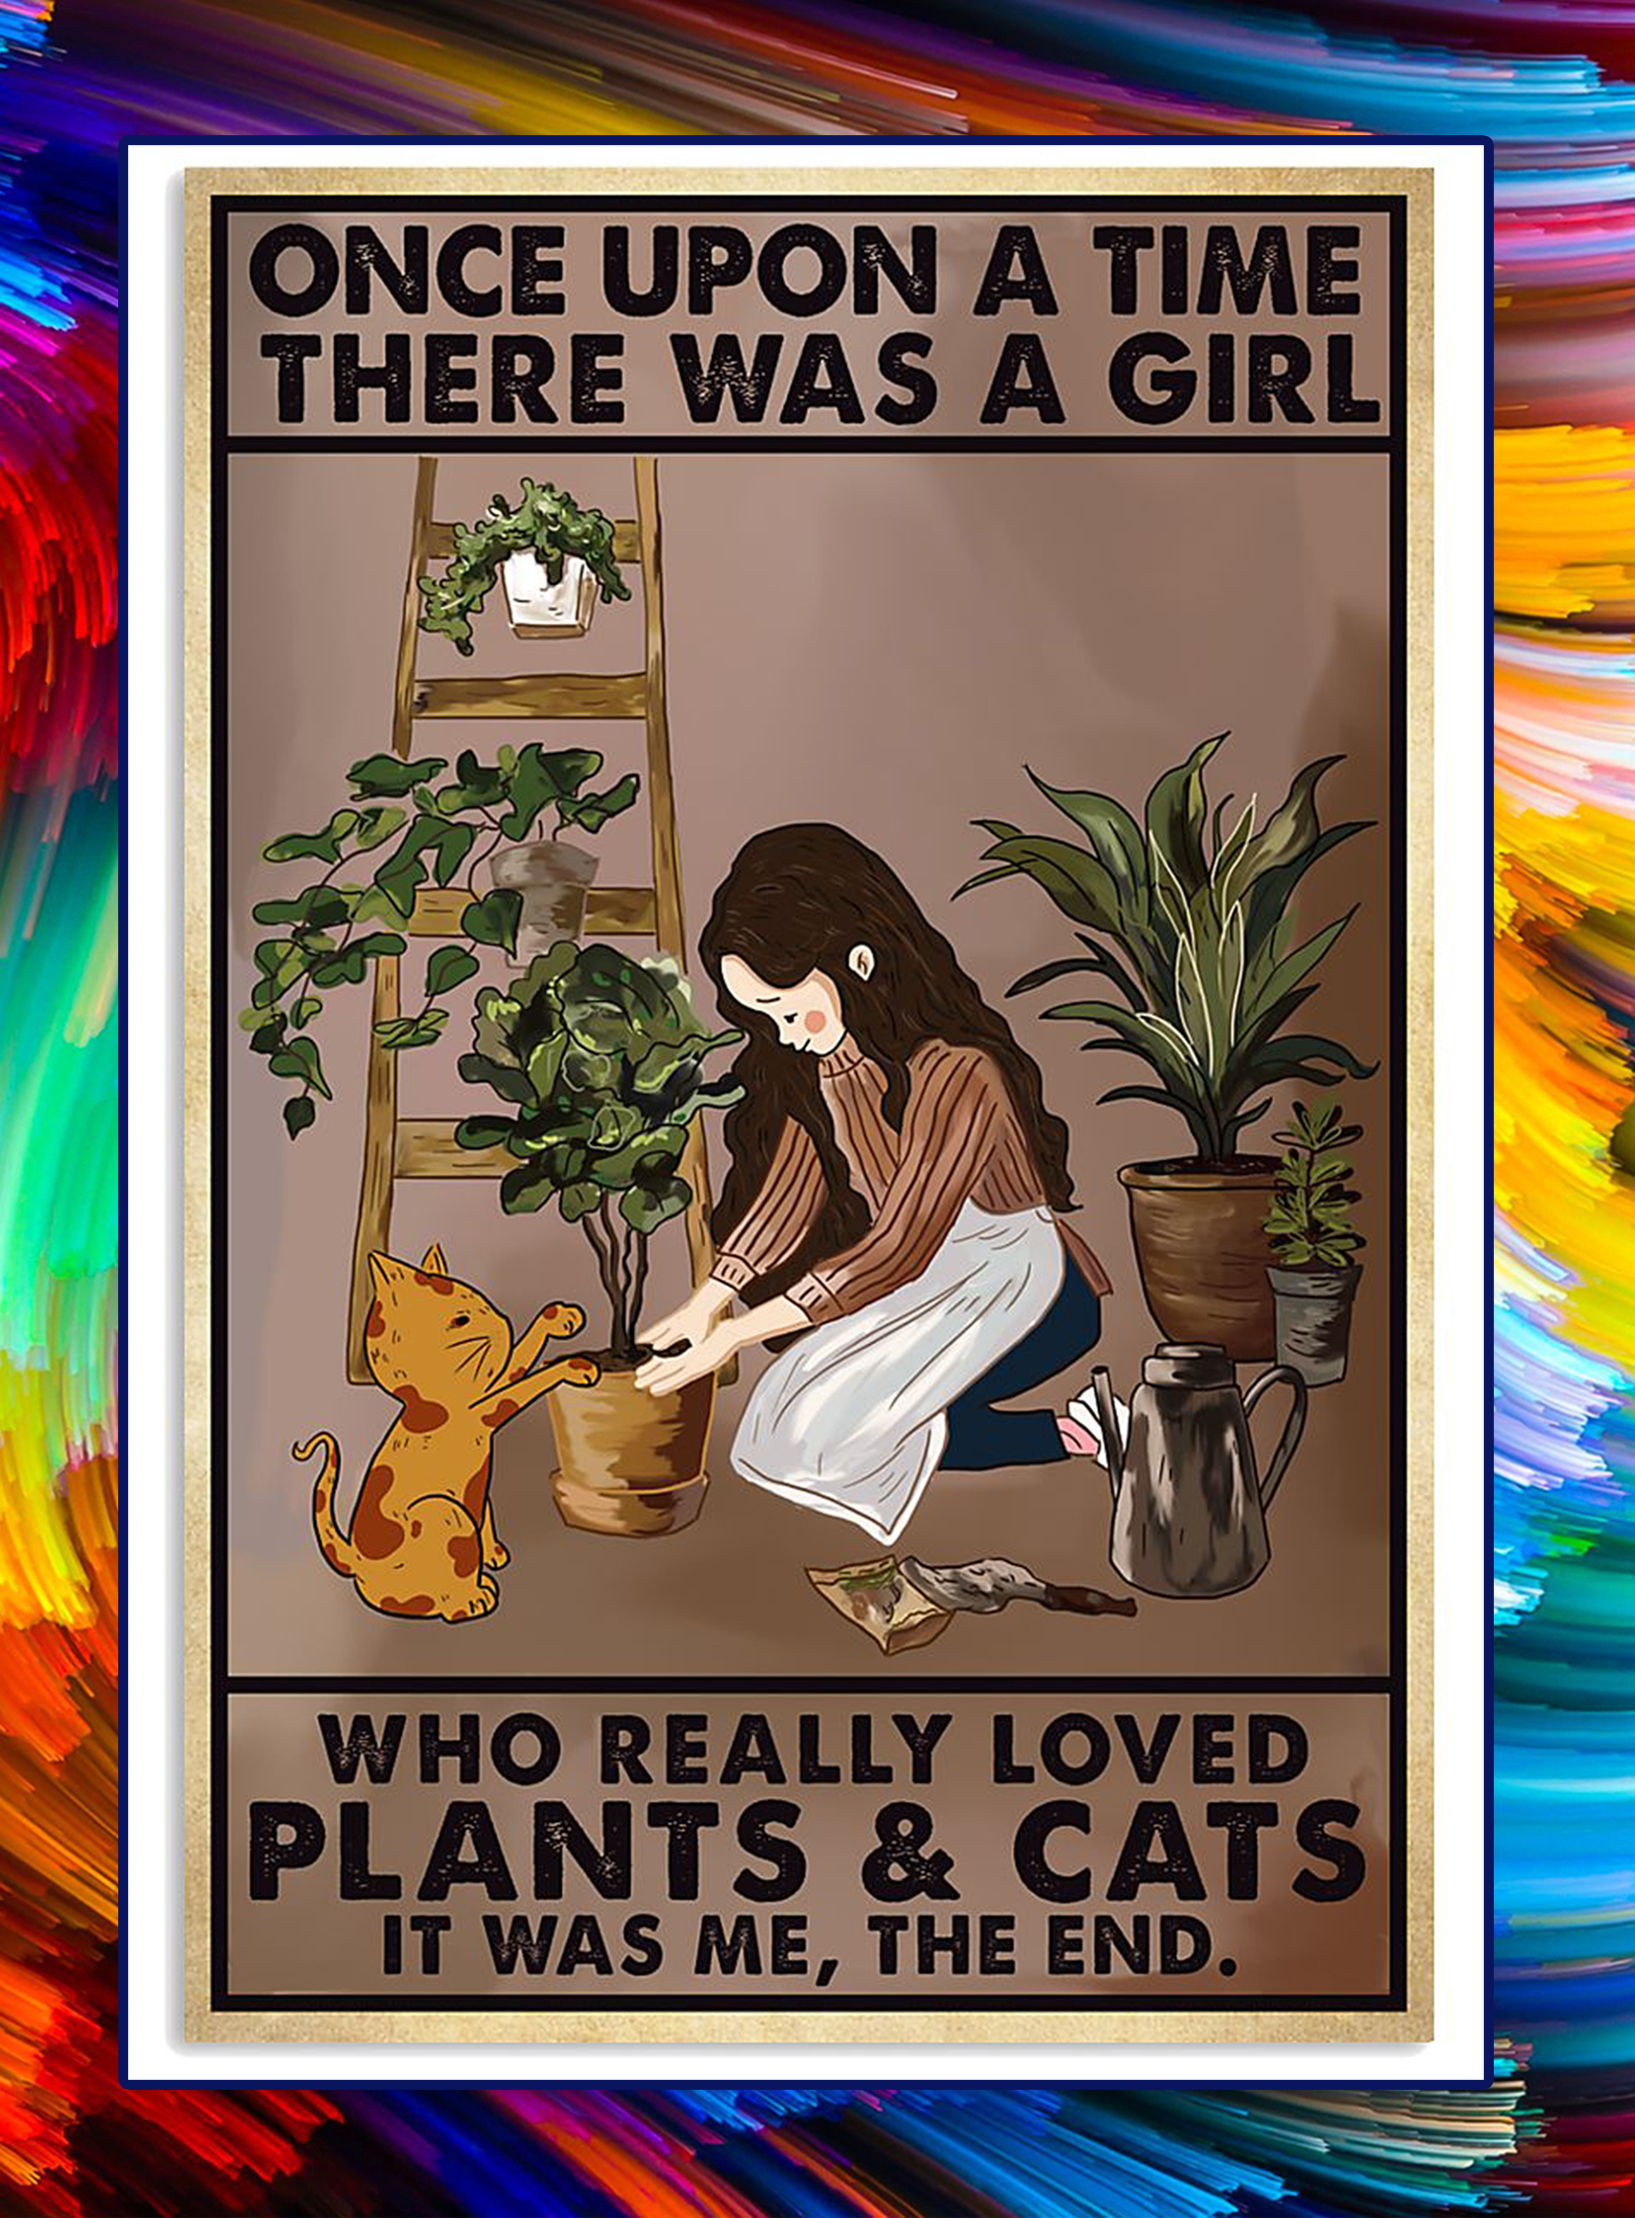 Once upon a time there was a girl who really loved plants and cats poster - A2